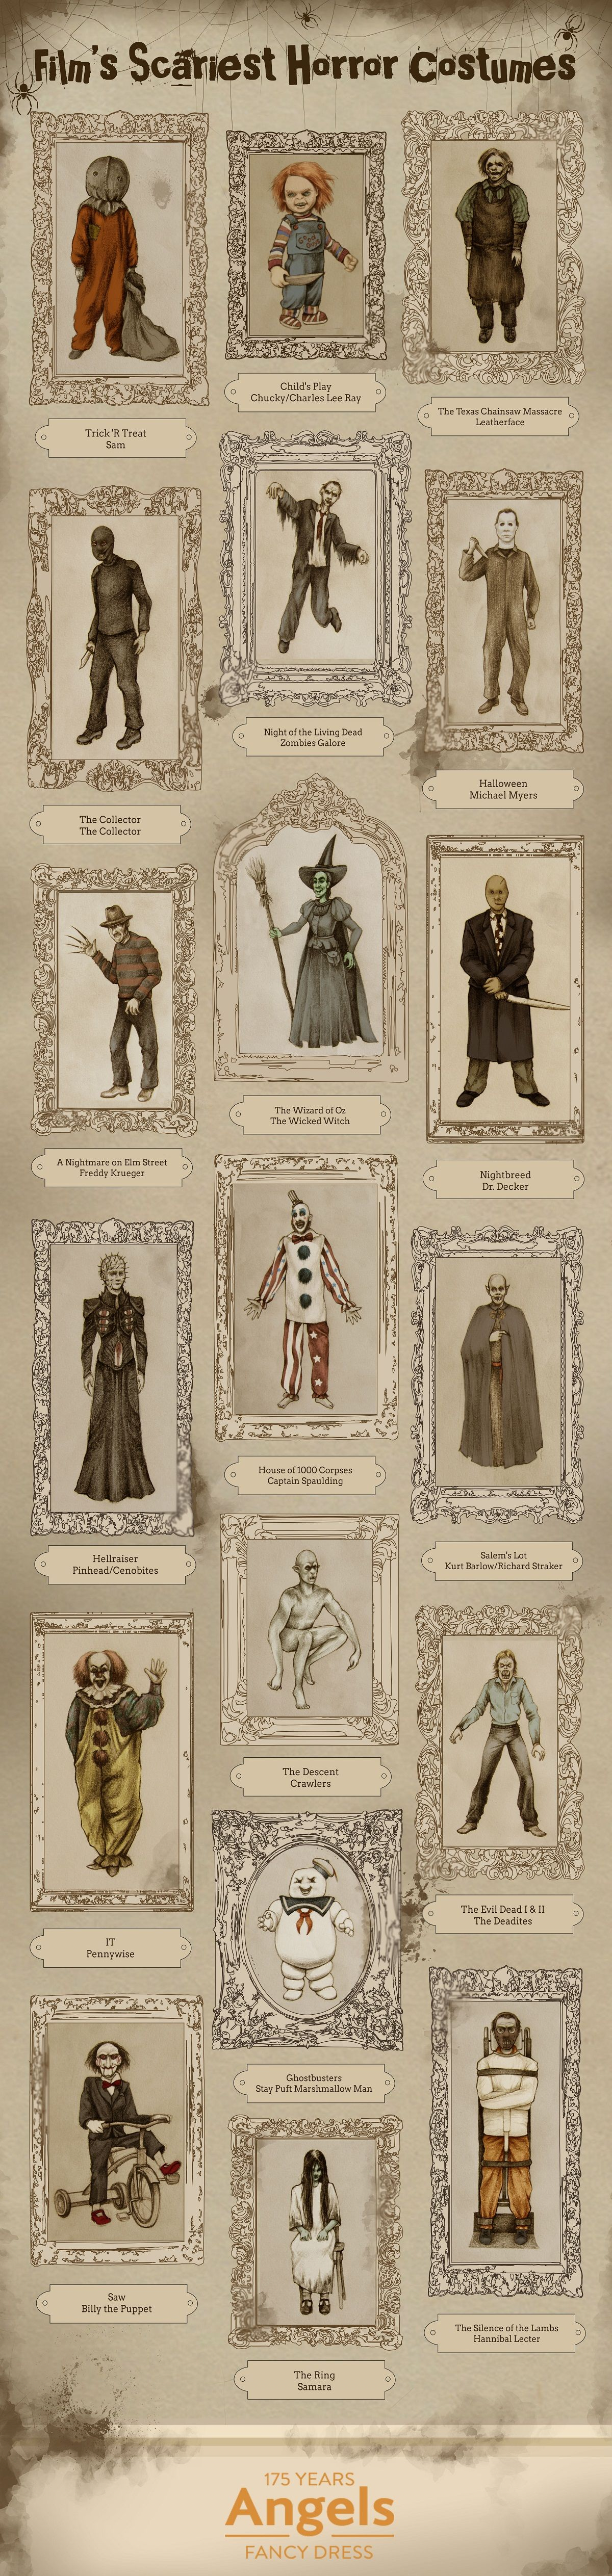 Film's Scariest Horror Costumes #infographic